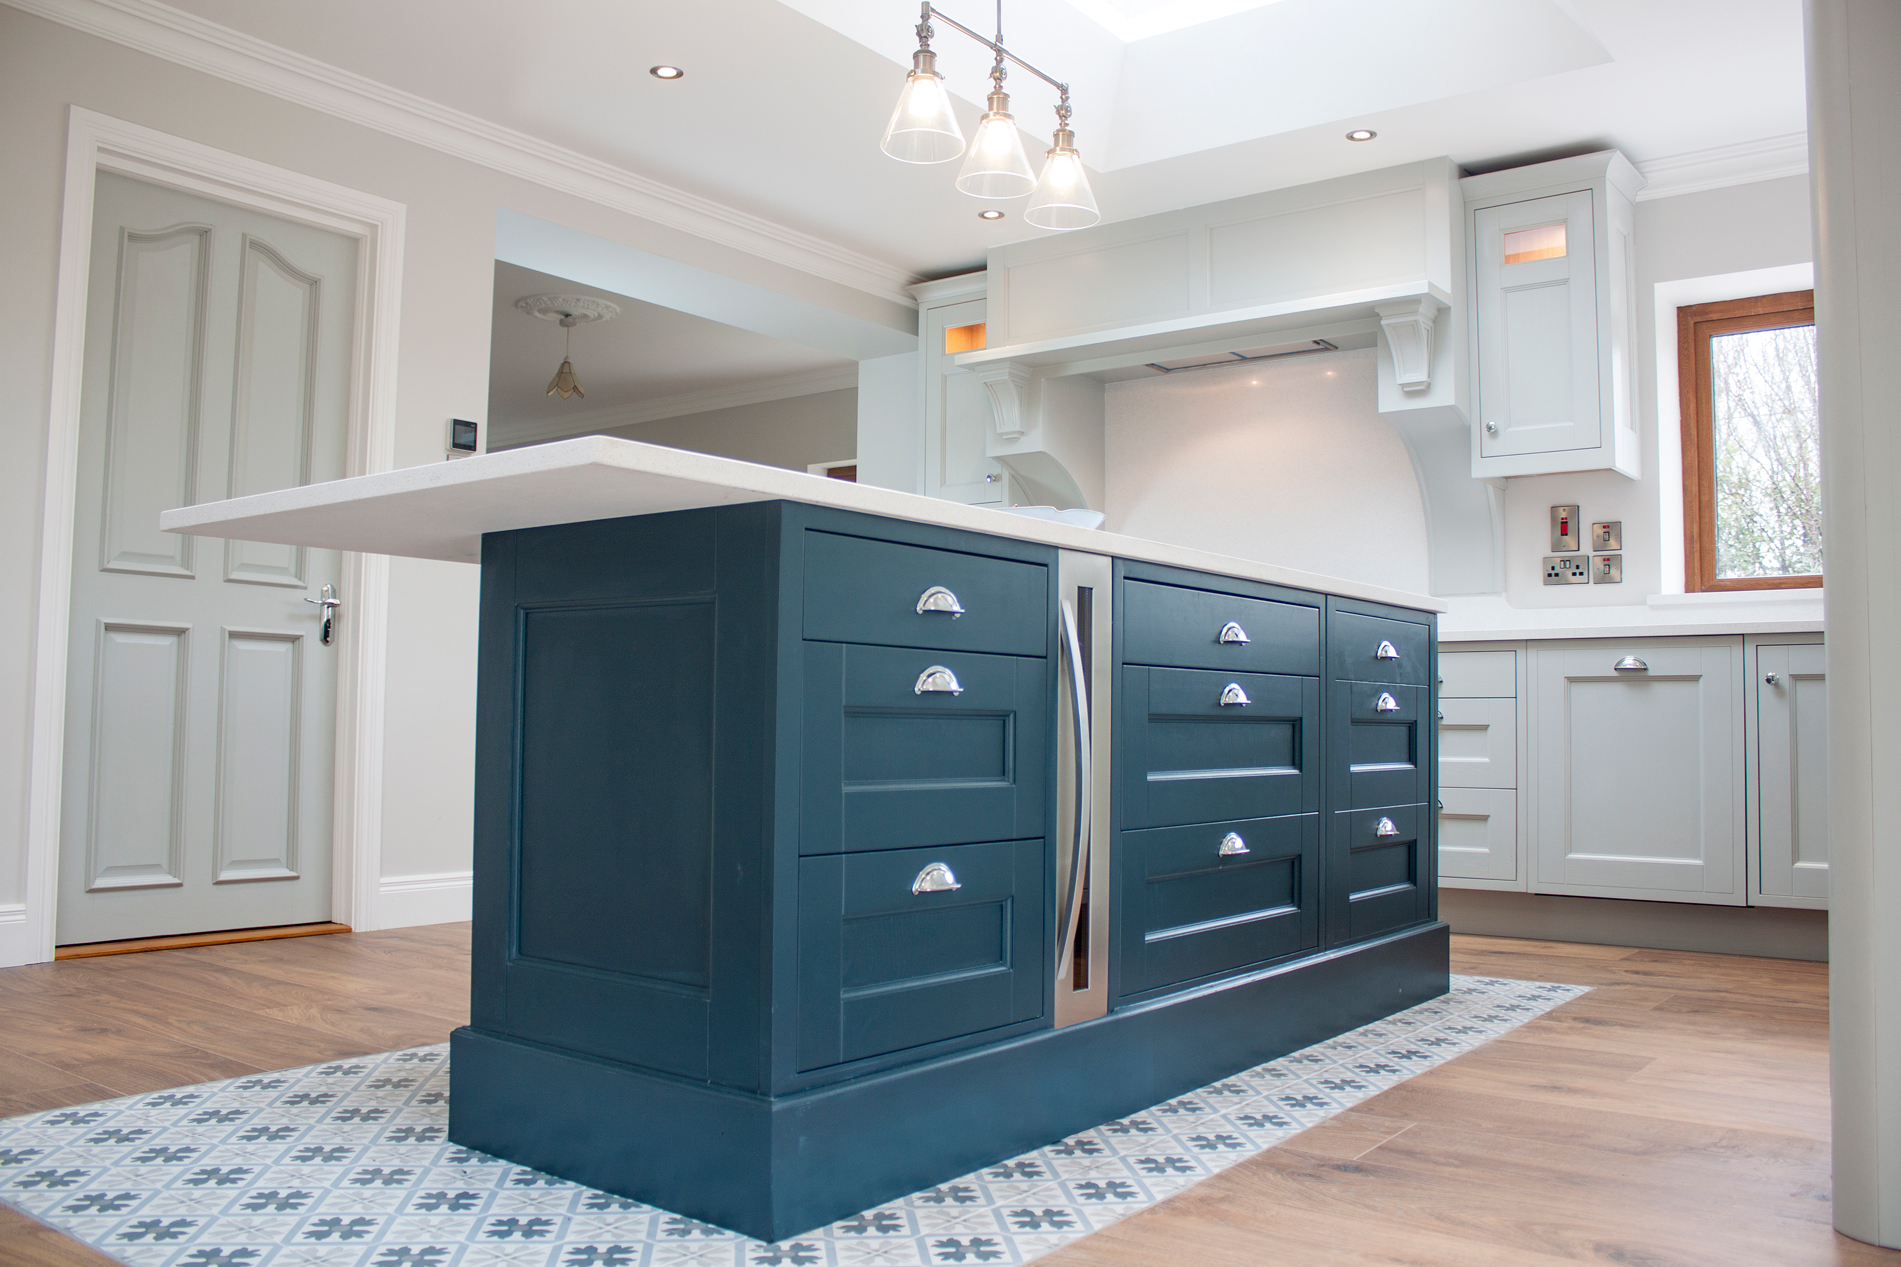 tipperarykitchens.com – Kitchens are made for living. we make ...